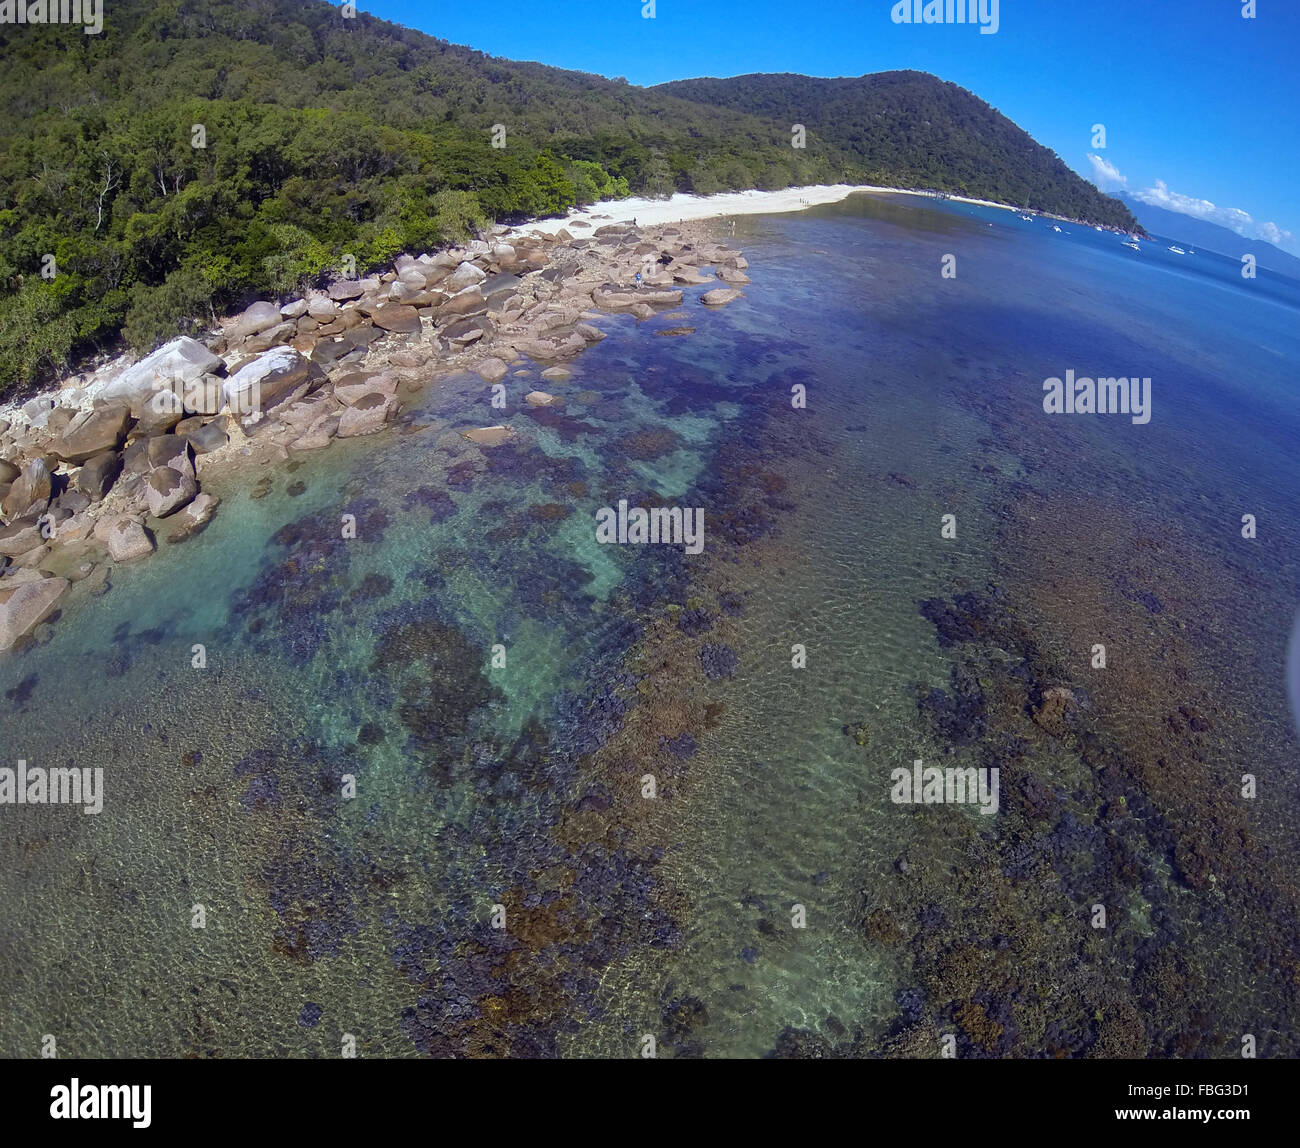 Aerial view of fringing reefs and coastline of Fitzroy Island, Great Barrier Reef Marine Park, Queensland, Australia Stock Photo